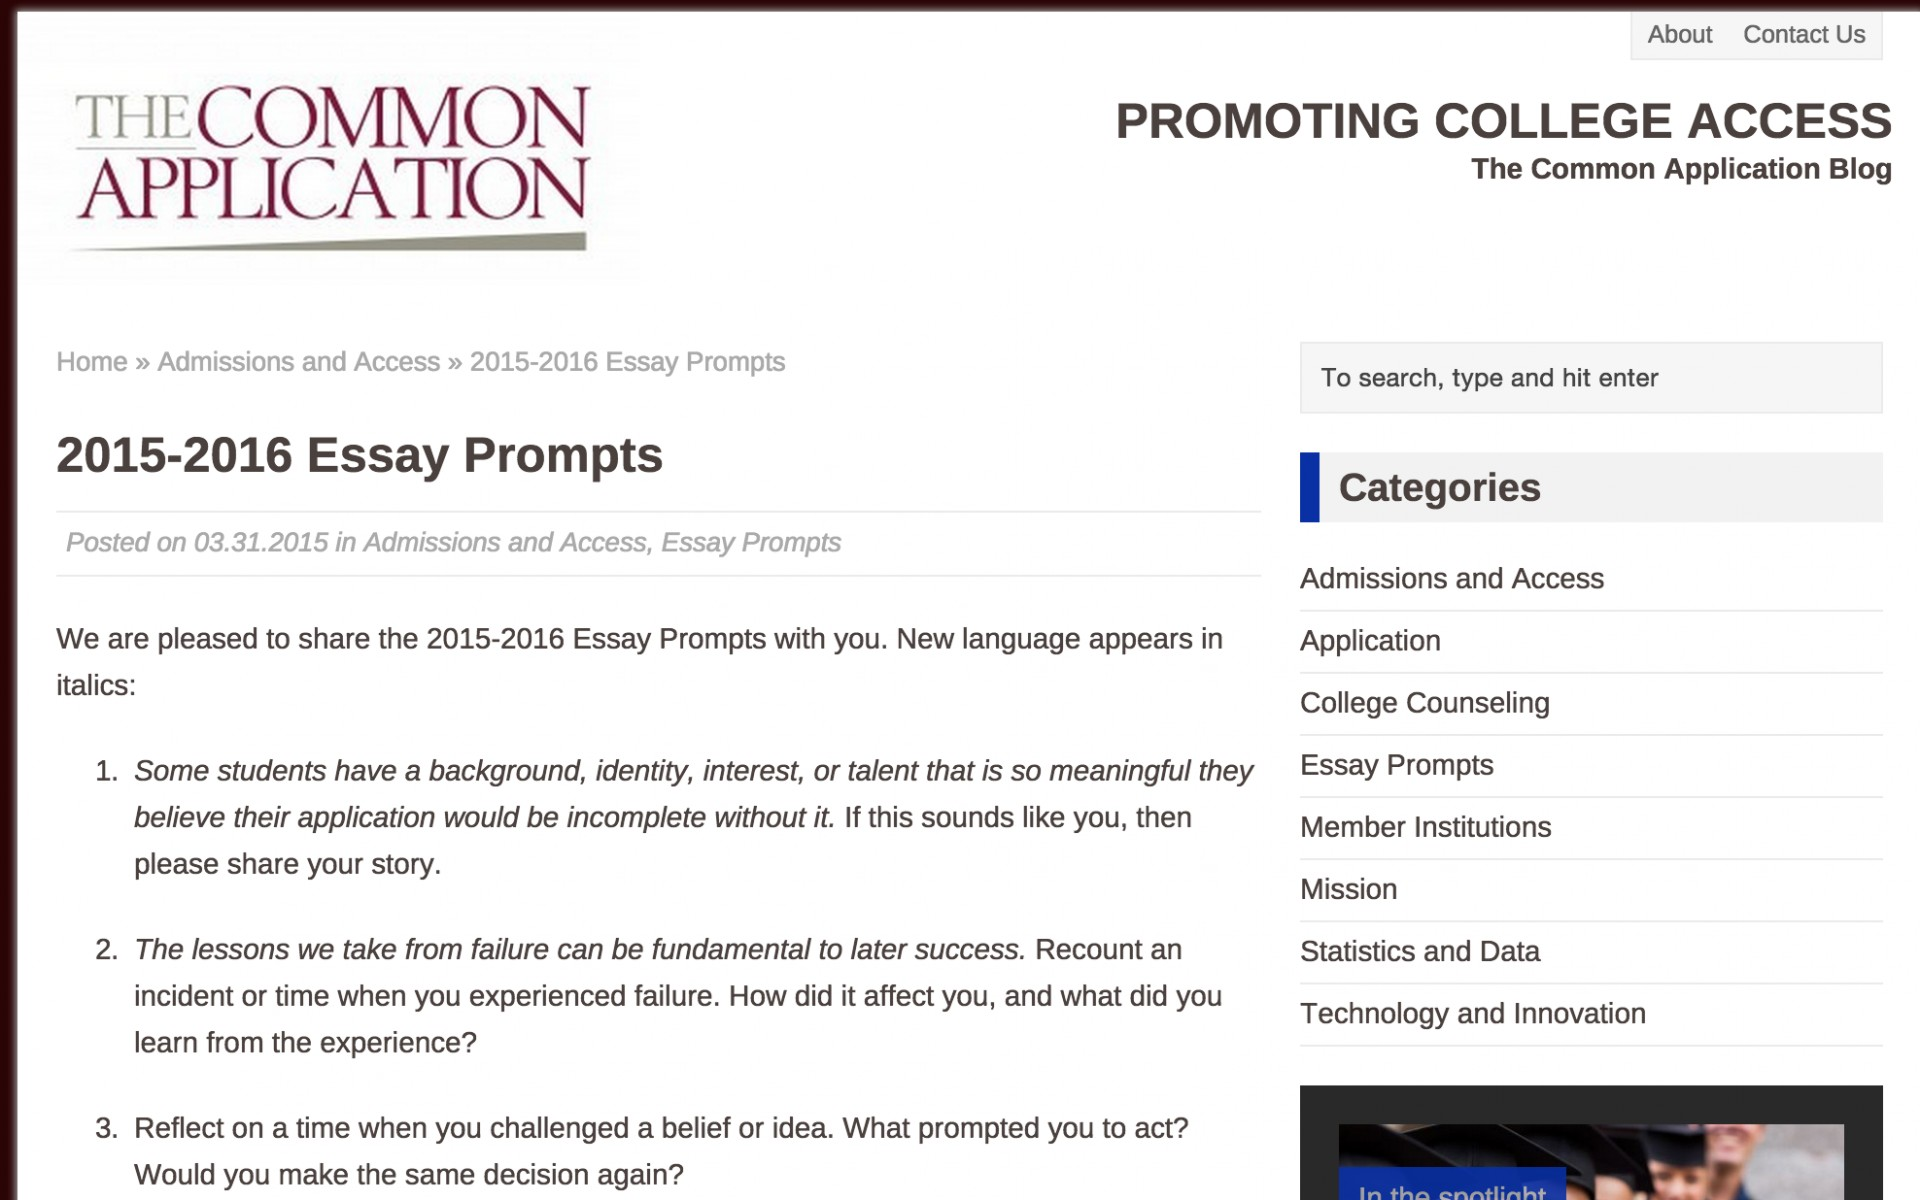 002 Essay Example Screen Shot At Pm Common App Unusual Prompt 1 Examples 3 4 1920